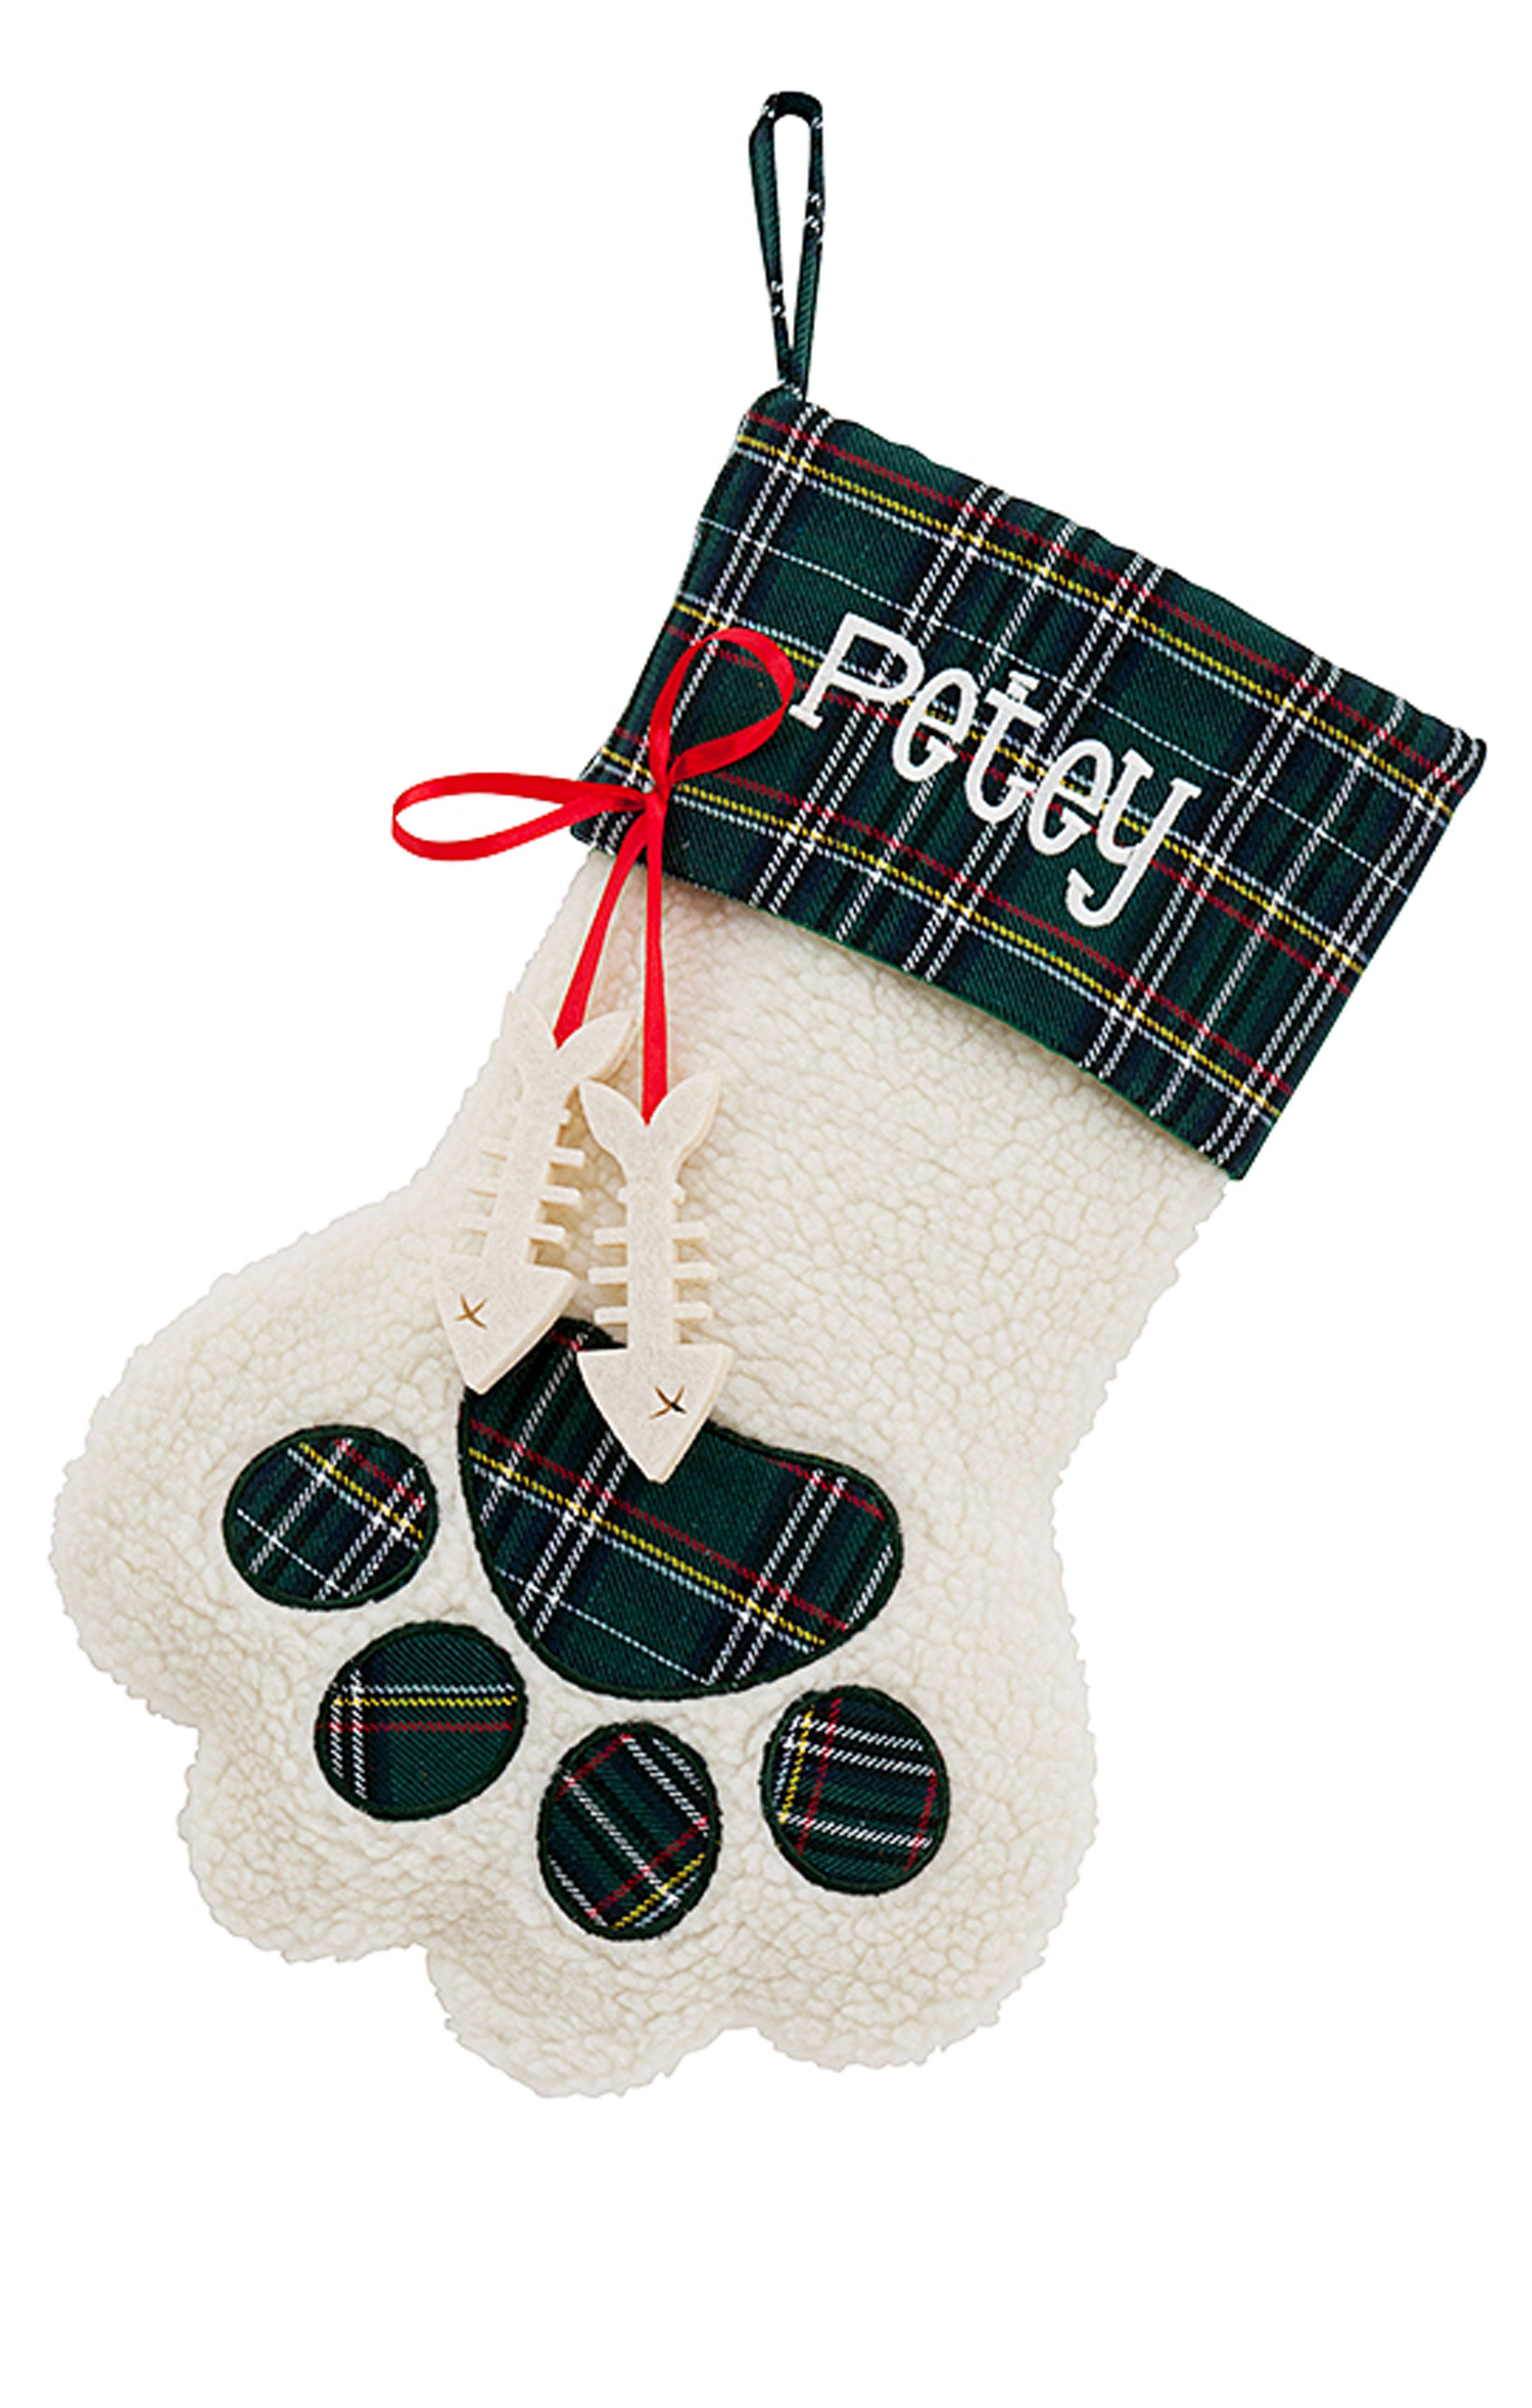 Get a head start on holiday prep by ordering a customized stocking